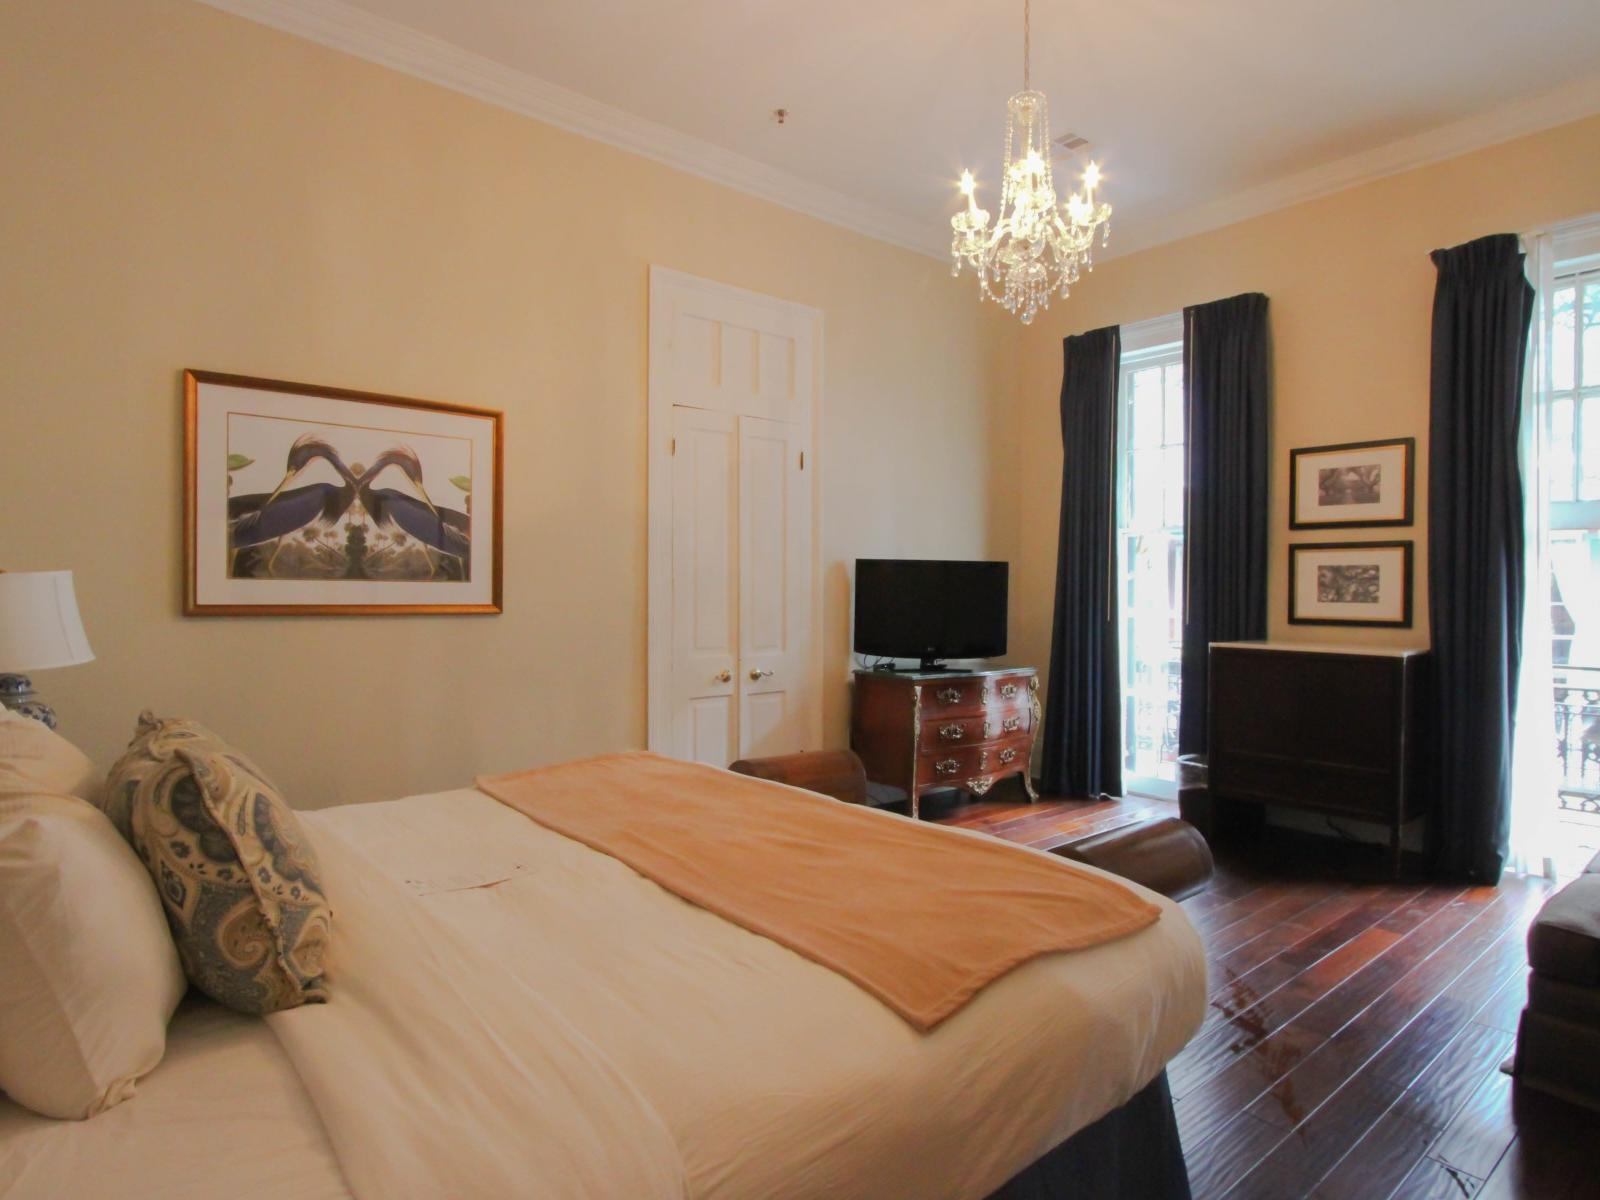 Historic King Room with one bed at Andrea Jackson Hotel